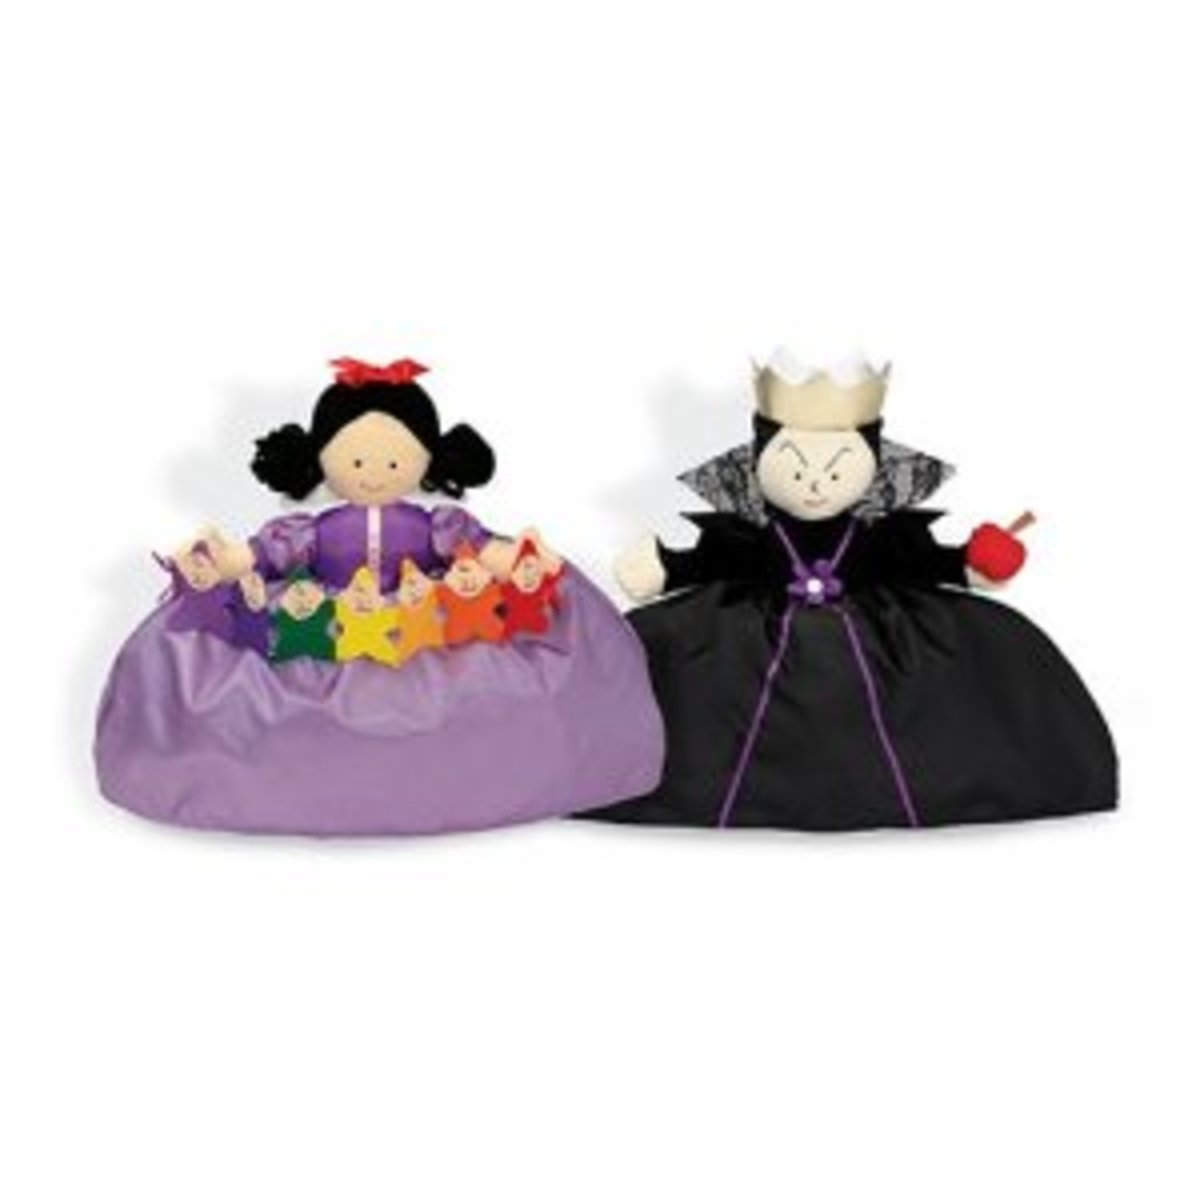 charming-topsy-turvy-dolls-lovable-toys-depict-nursery-rhyme-and-fairytale-characters